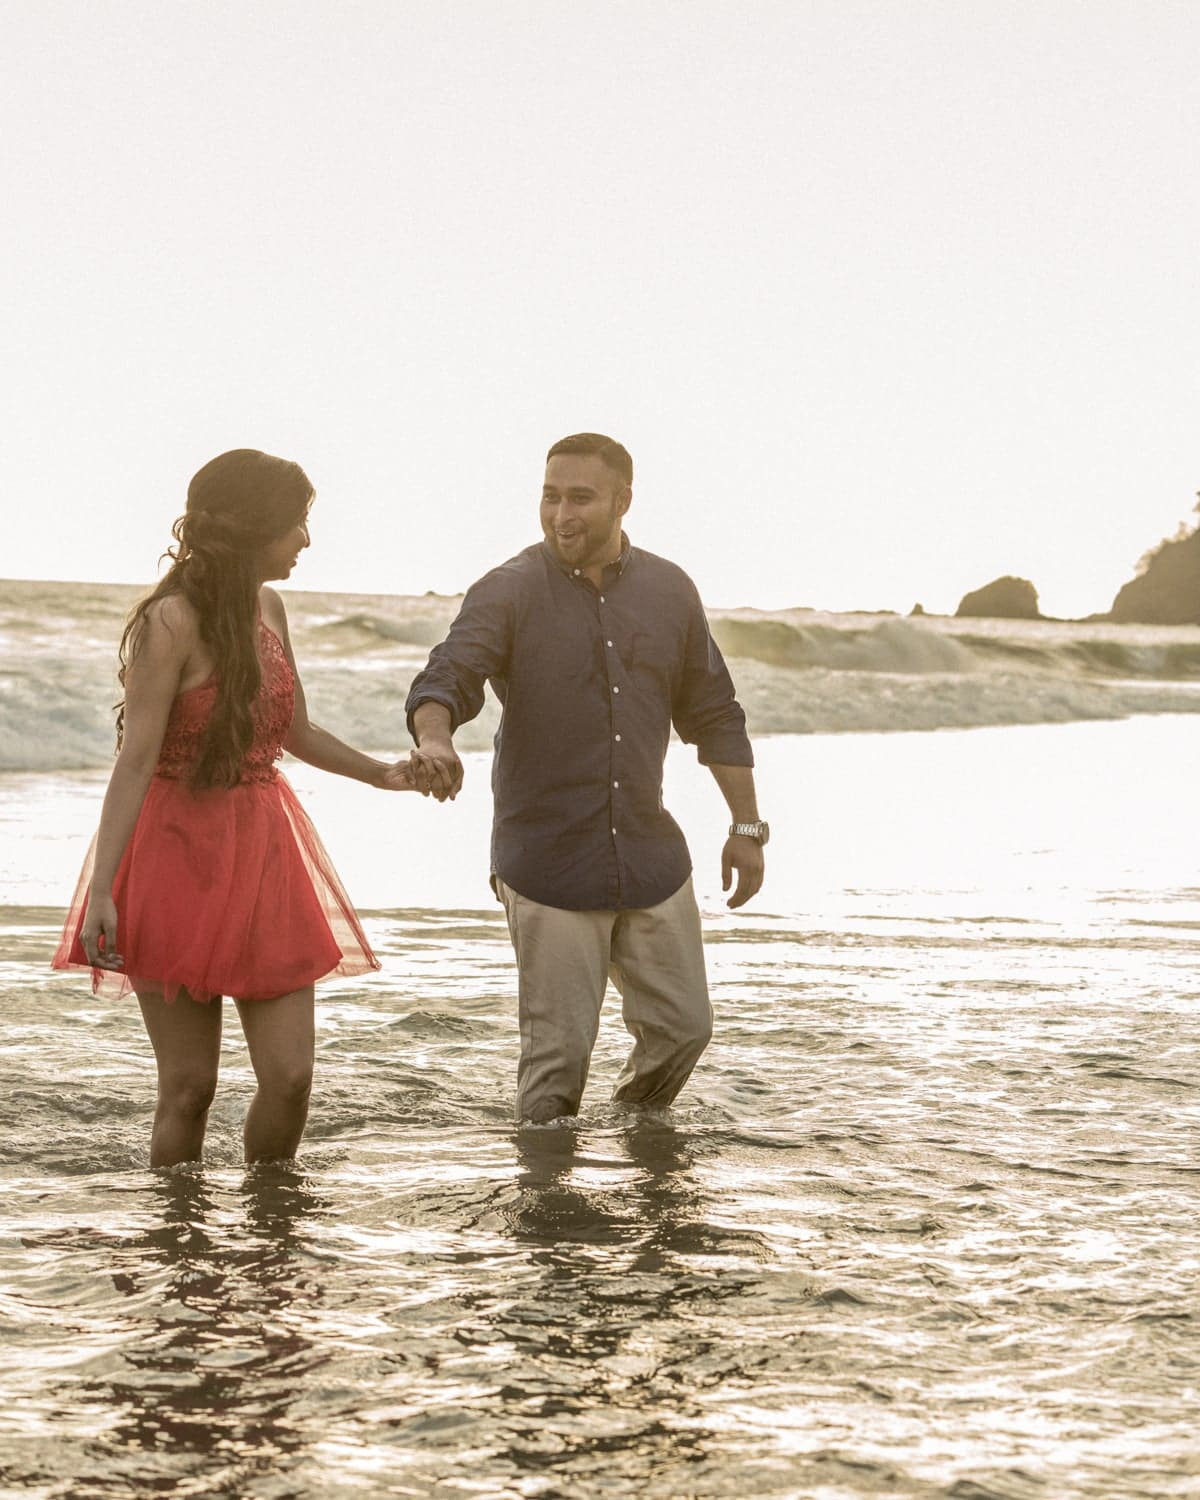 Couple in love holding hands and walking in water at the beach.